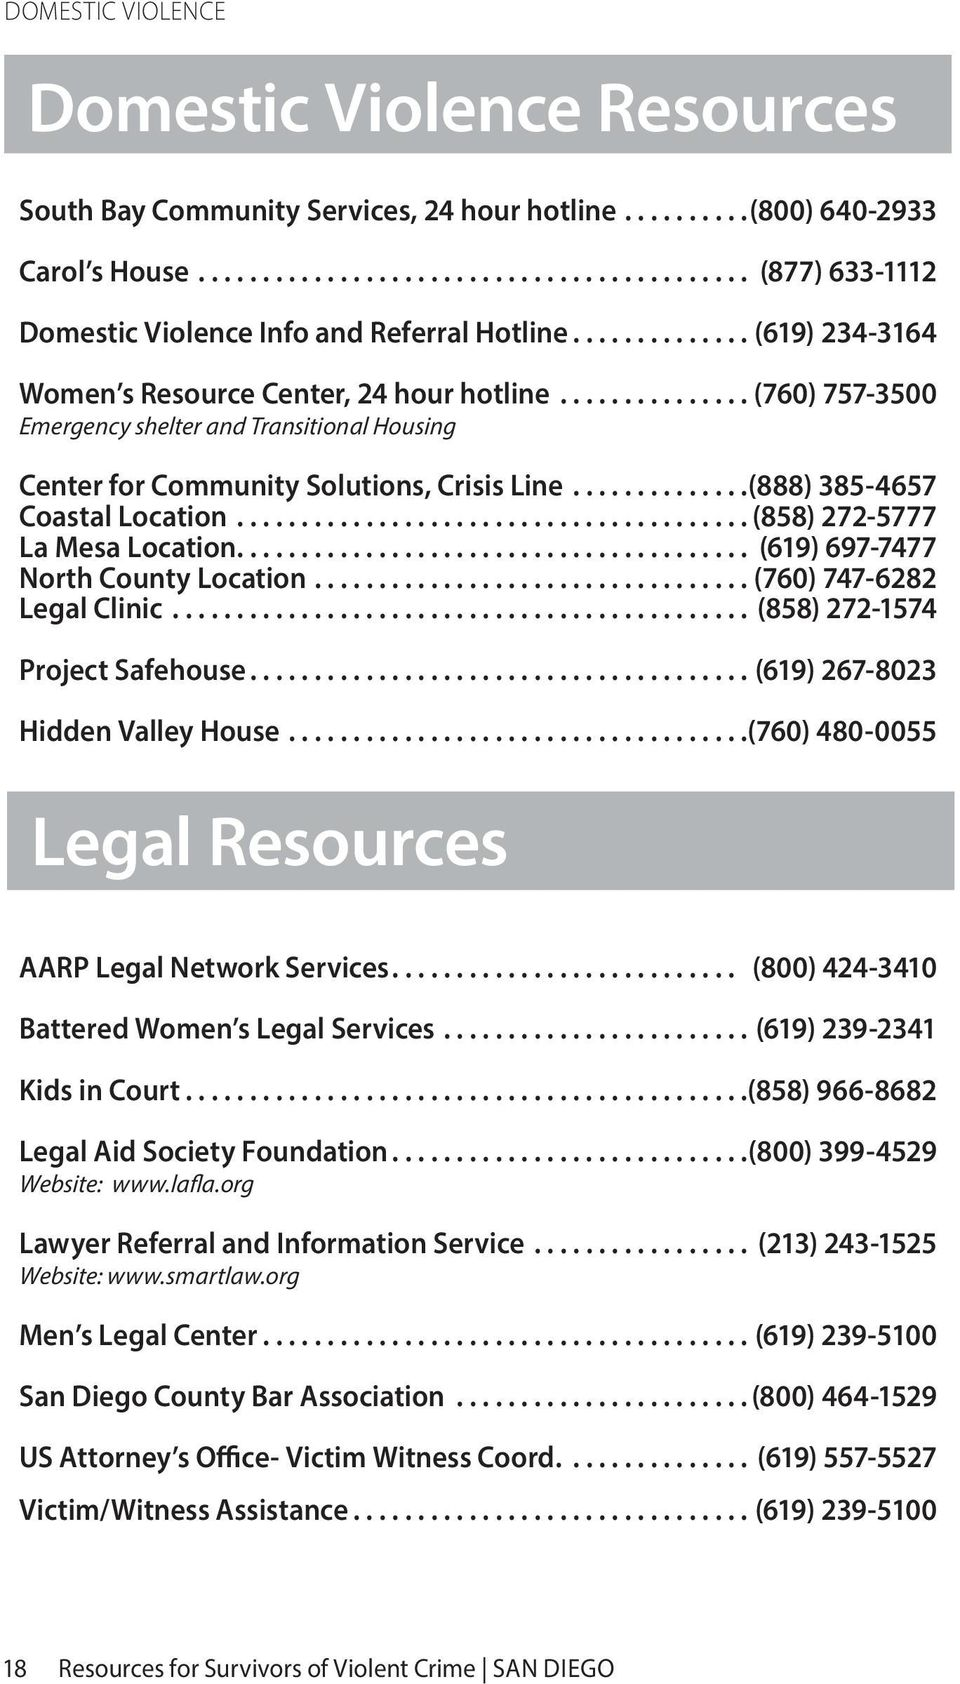 .. (858) 272-5777 La Mesa Location... (619) 697-7477 North County Location....(760) 747-6282 Legal Clinic... (858) 272-1574 Project Safehouse...(619) 267-8023 Hidden Valley House.